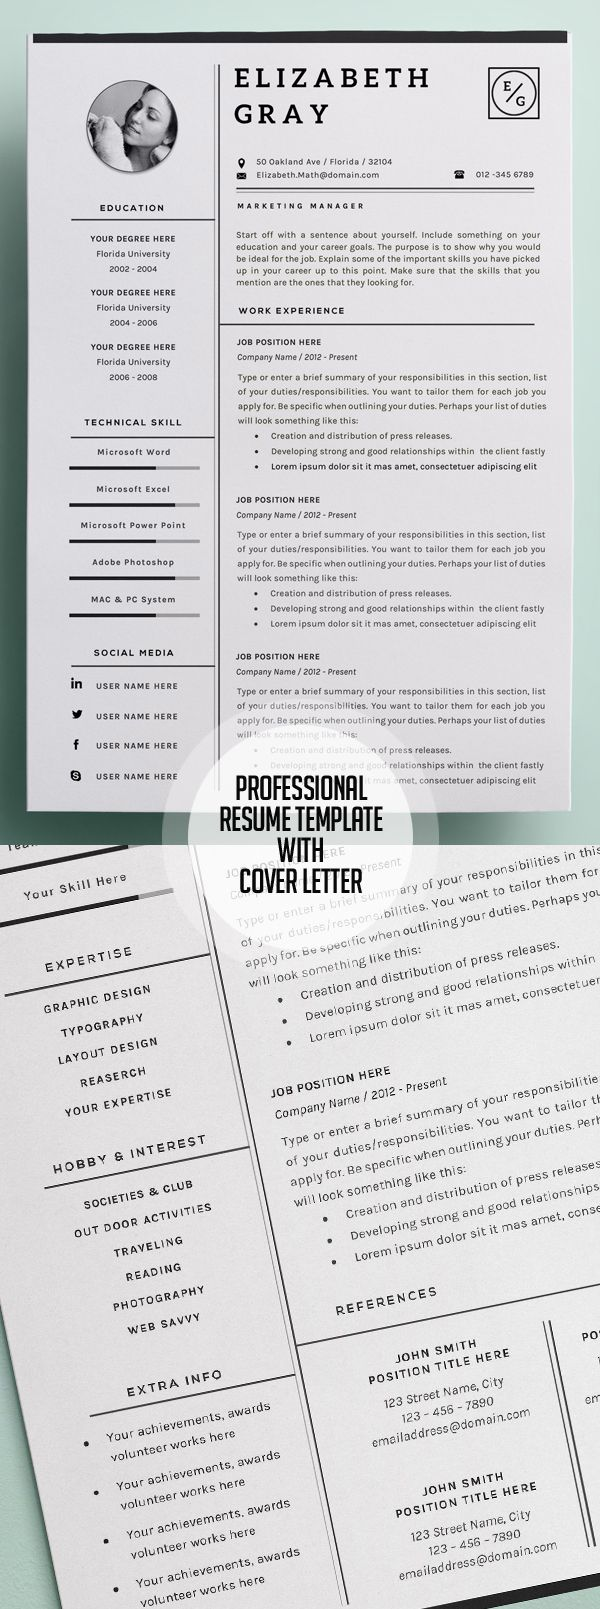 Picnictoimpeachus  Scenic  Resume Ideas On Pinterest  Resume Resume Templates And  With Handsome Professional And Modern Resume Template With Page Cover Cvtemplate With Delectable Security Officer Resume Sample Also Student Resume Samples In Addition Samples Resumes And Resume Writing Services Cost As Well As Instructional Design Resume Additionally Samples Of A Resume From Pinterestcom With Picnictoimpeachus  Handsome  Resume Ideas On Pinterest  Resume Resume Templates And  With Delectable Professional And Modern Resume Template With Page Cover Cvtemplate And Scenic Security Officer Resume Sample Also Student Resume Samples In Addition Samples Resumes From Pinterestcom